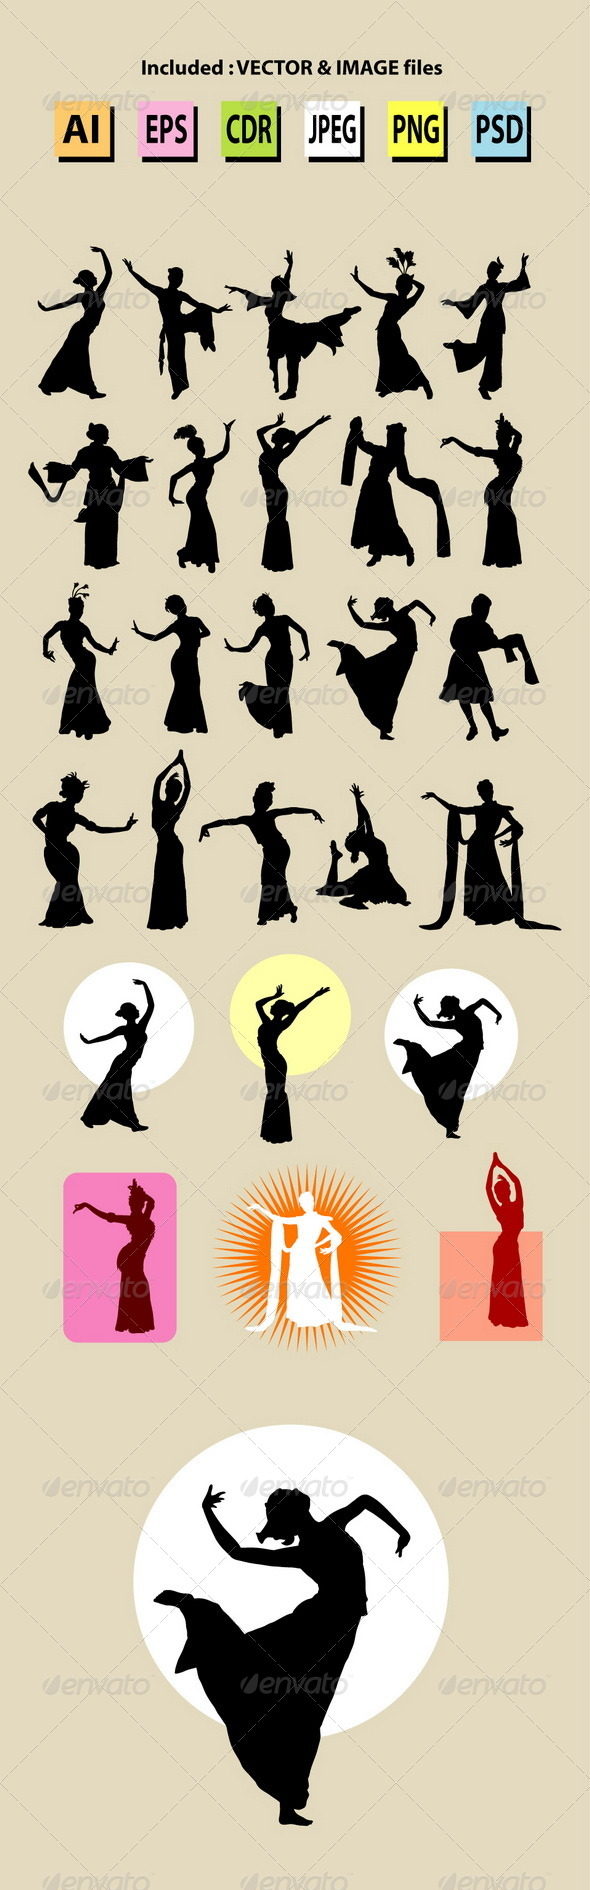 Chinese dancer clipart image library Pin by Felicia on Chinese dancers | Chinese dance, Dance silhouette ... image library